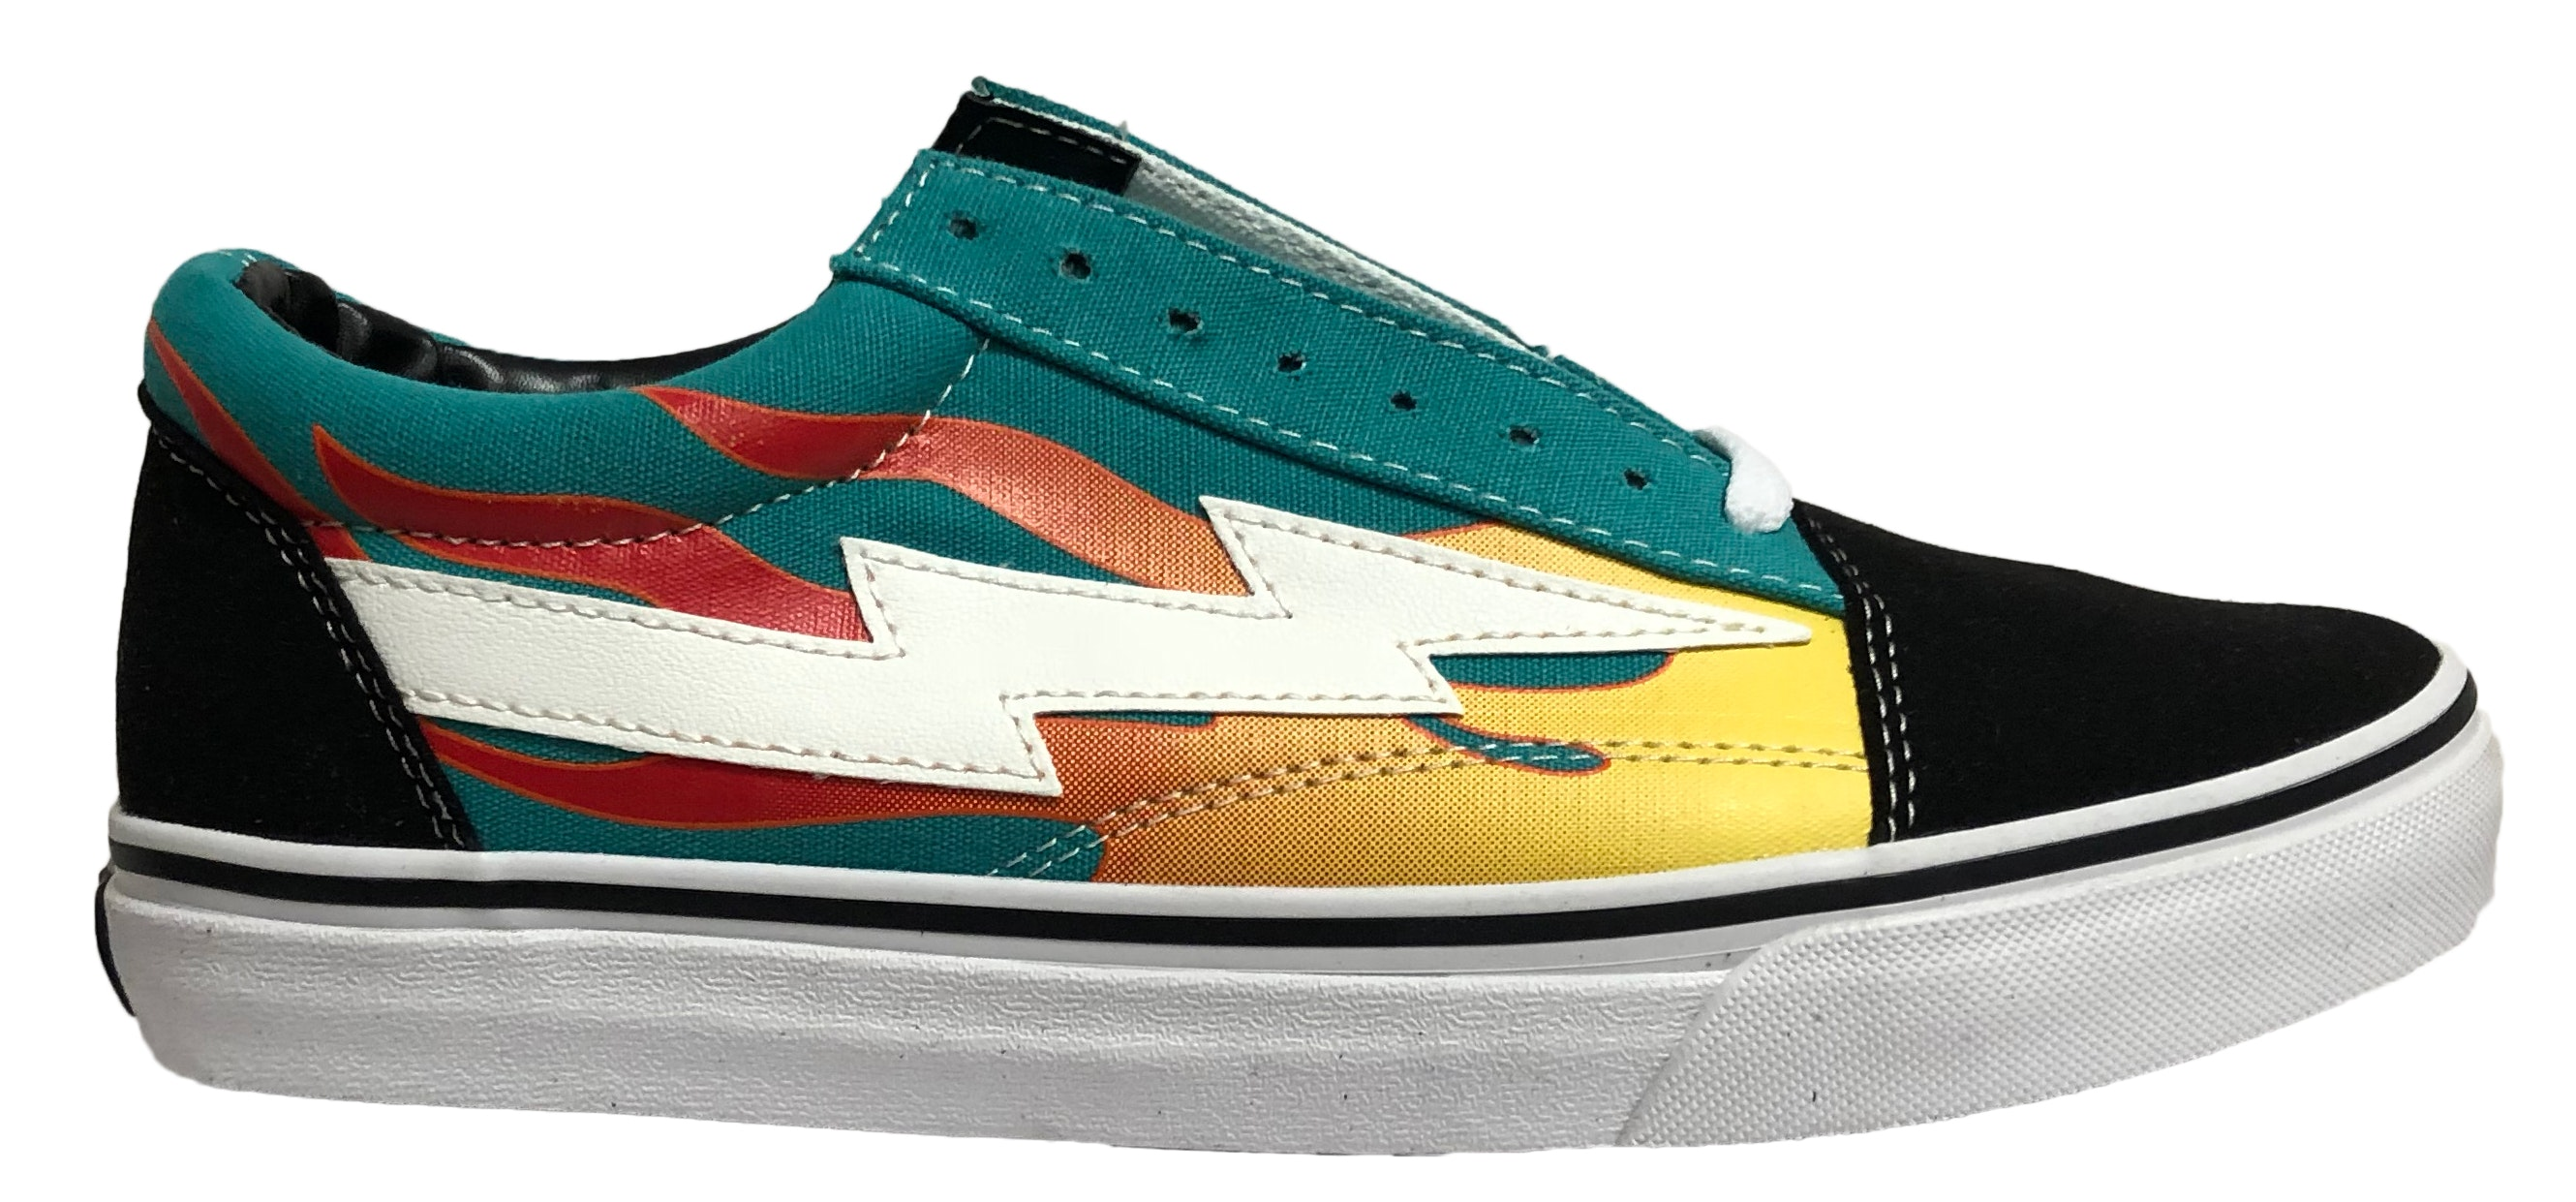 Revenge X Storm Low Top Teal (with Flames)